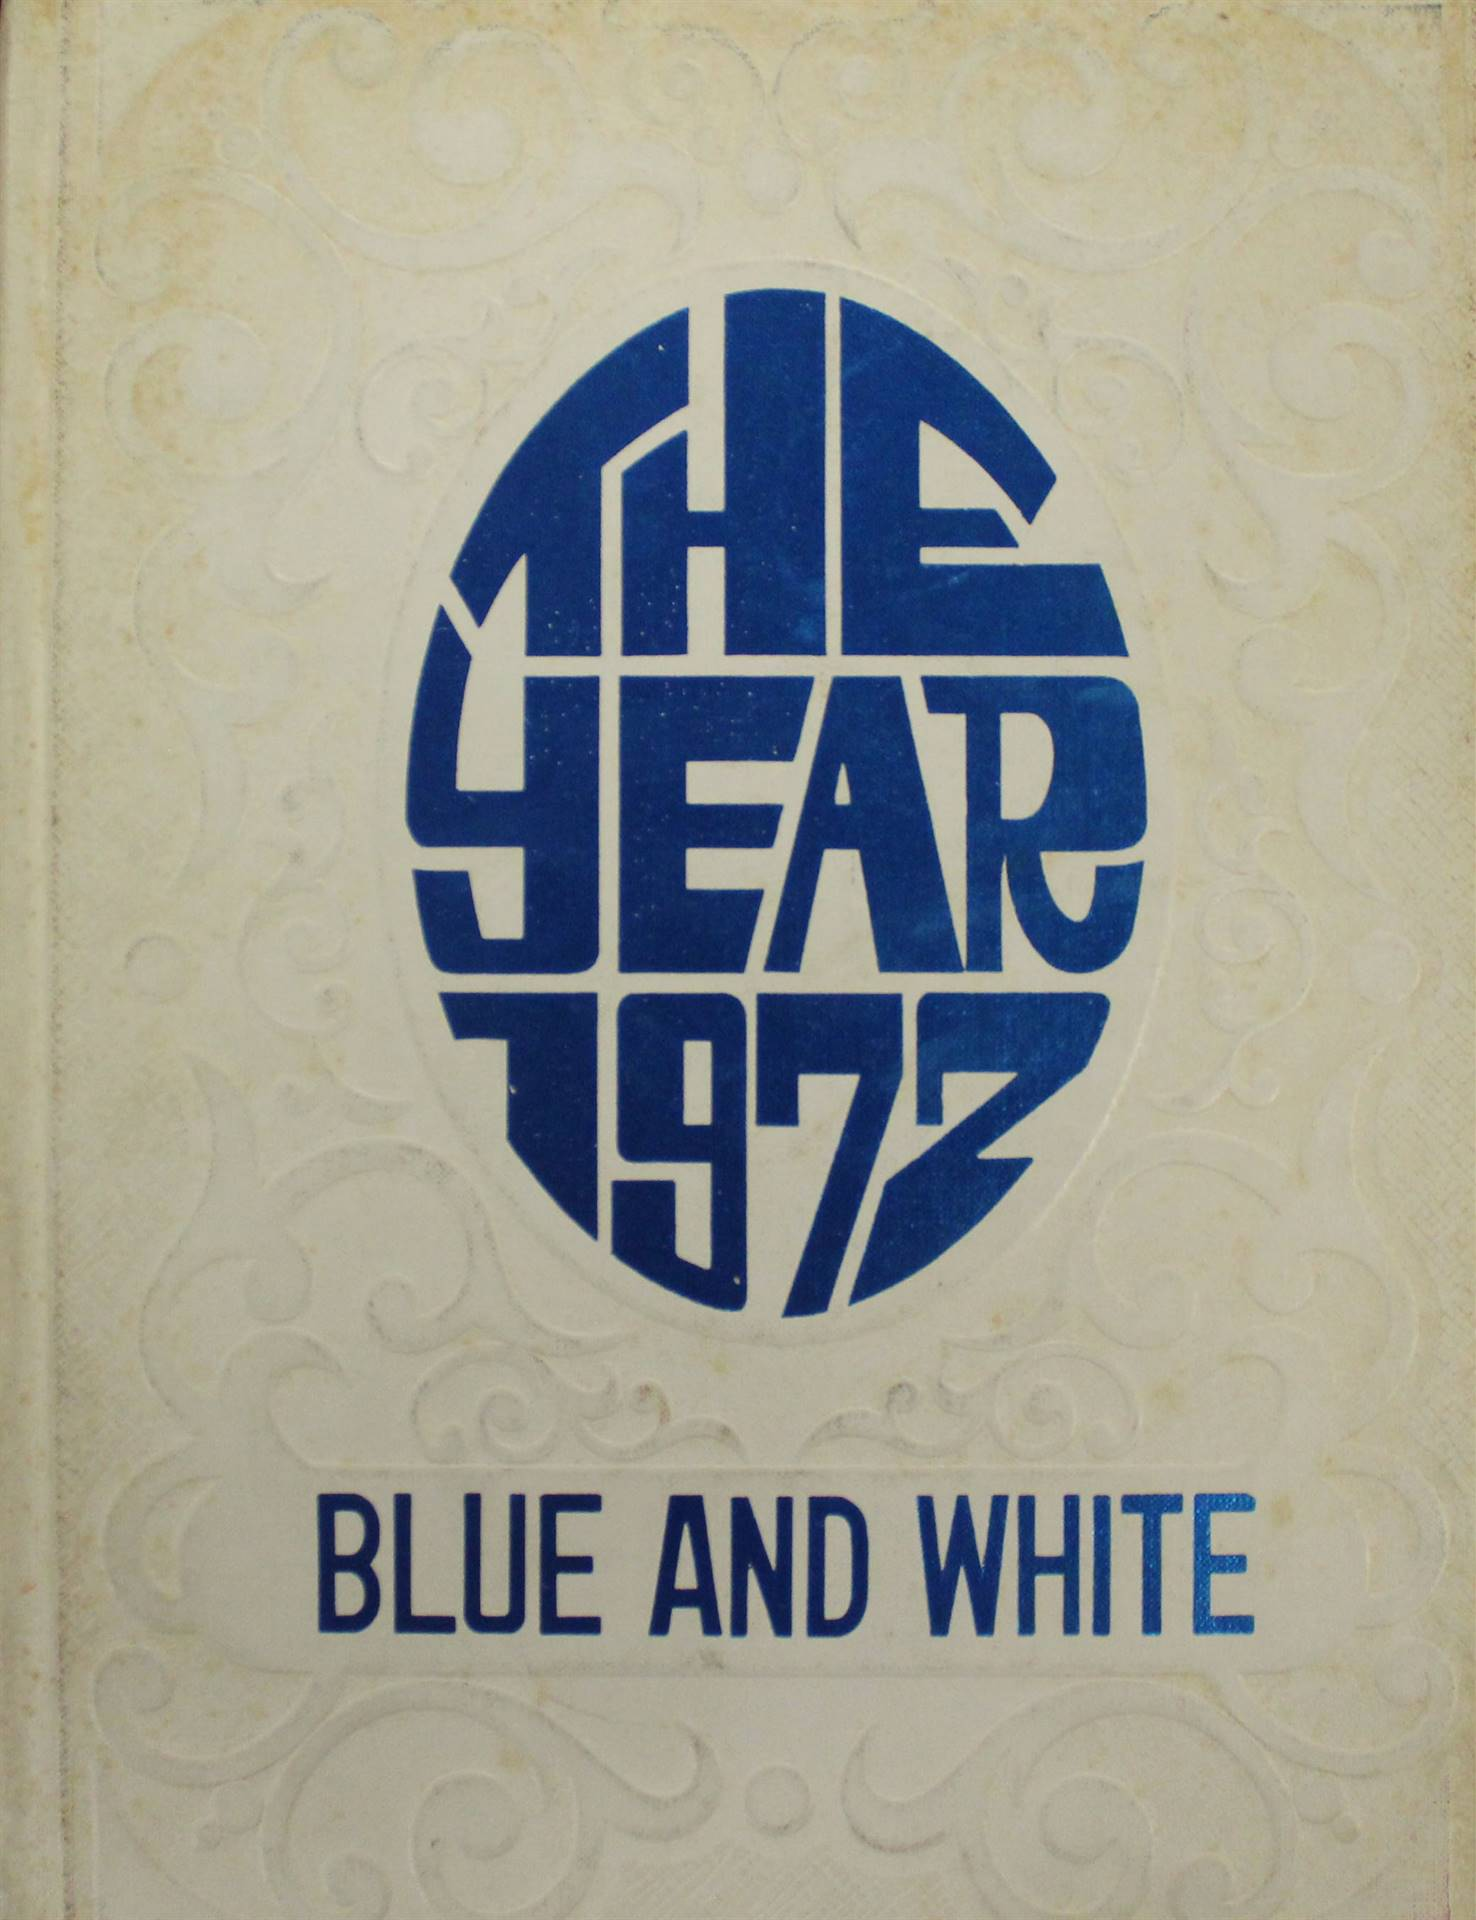 1972 Yearbook Cover Page